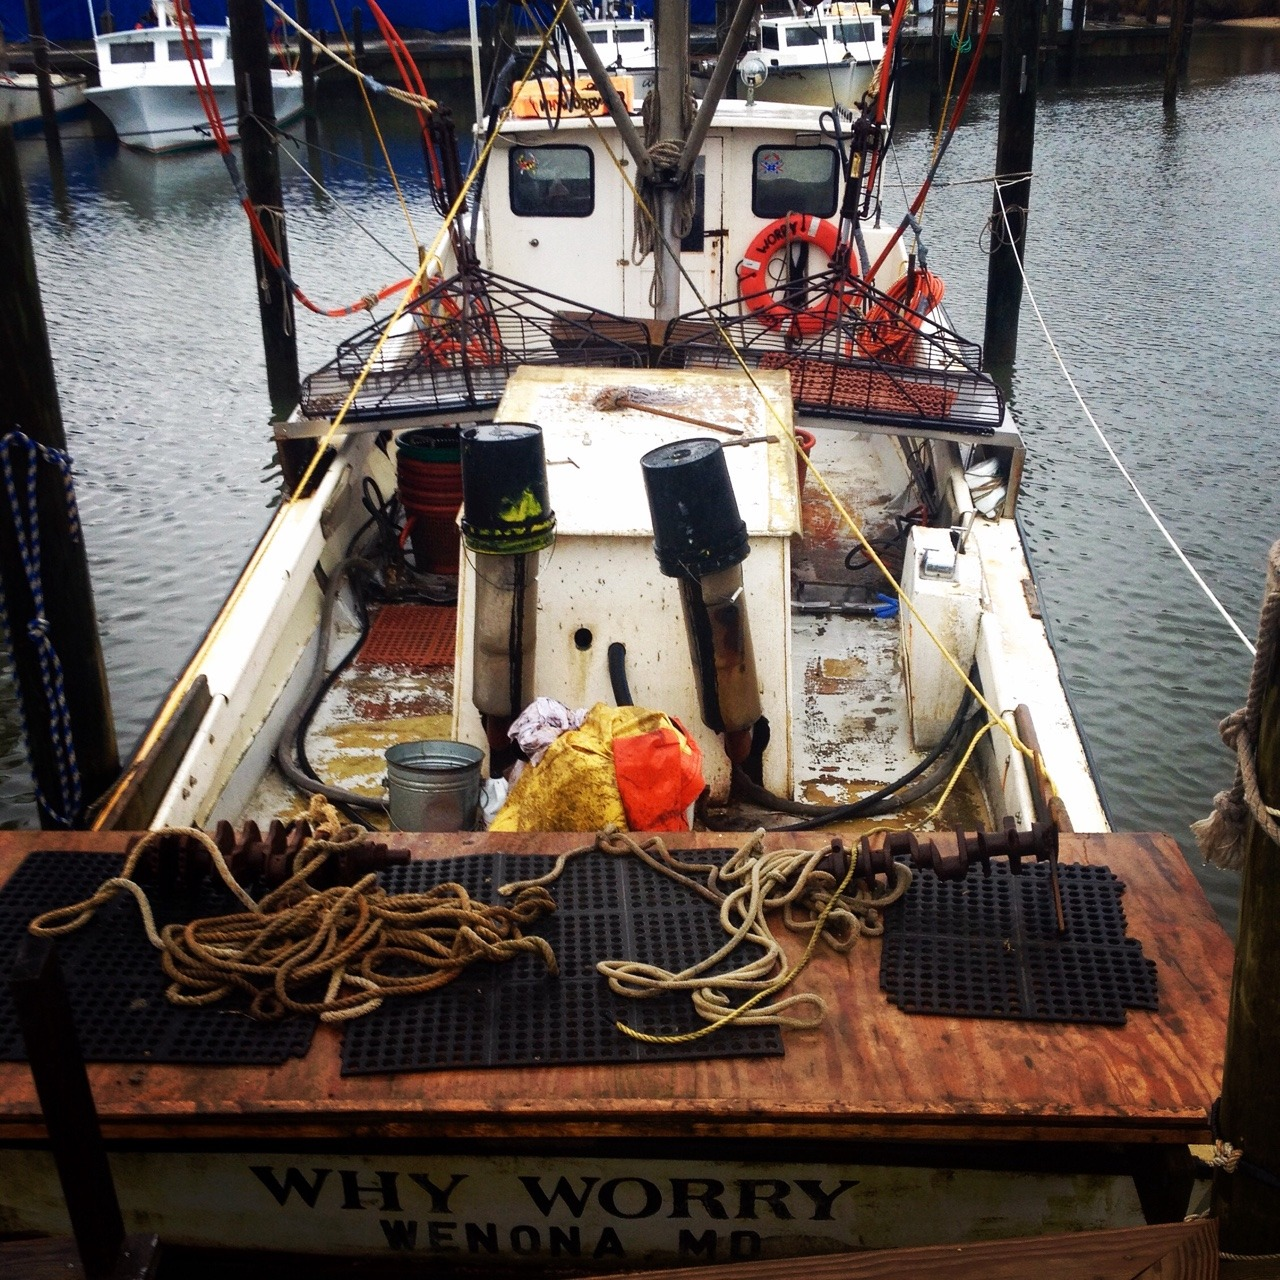 """The """"Why Worry"""" out of Wenona, Maryland is having a good oystering season this year. Other watermen out of Deal Island on Maryland's Eastern Shore have been meeting their limit, bringing in 100 bushels of oysters a day. It's good news for watermen and the working fleet of deadrises on Deal, where oysters still represent a substantial part of the Bay's winter economy."""